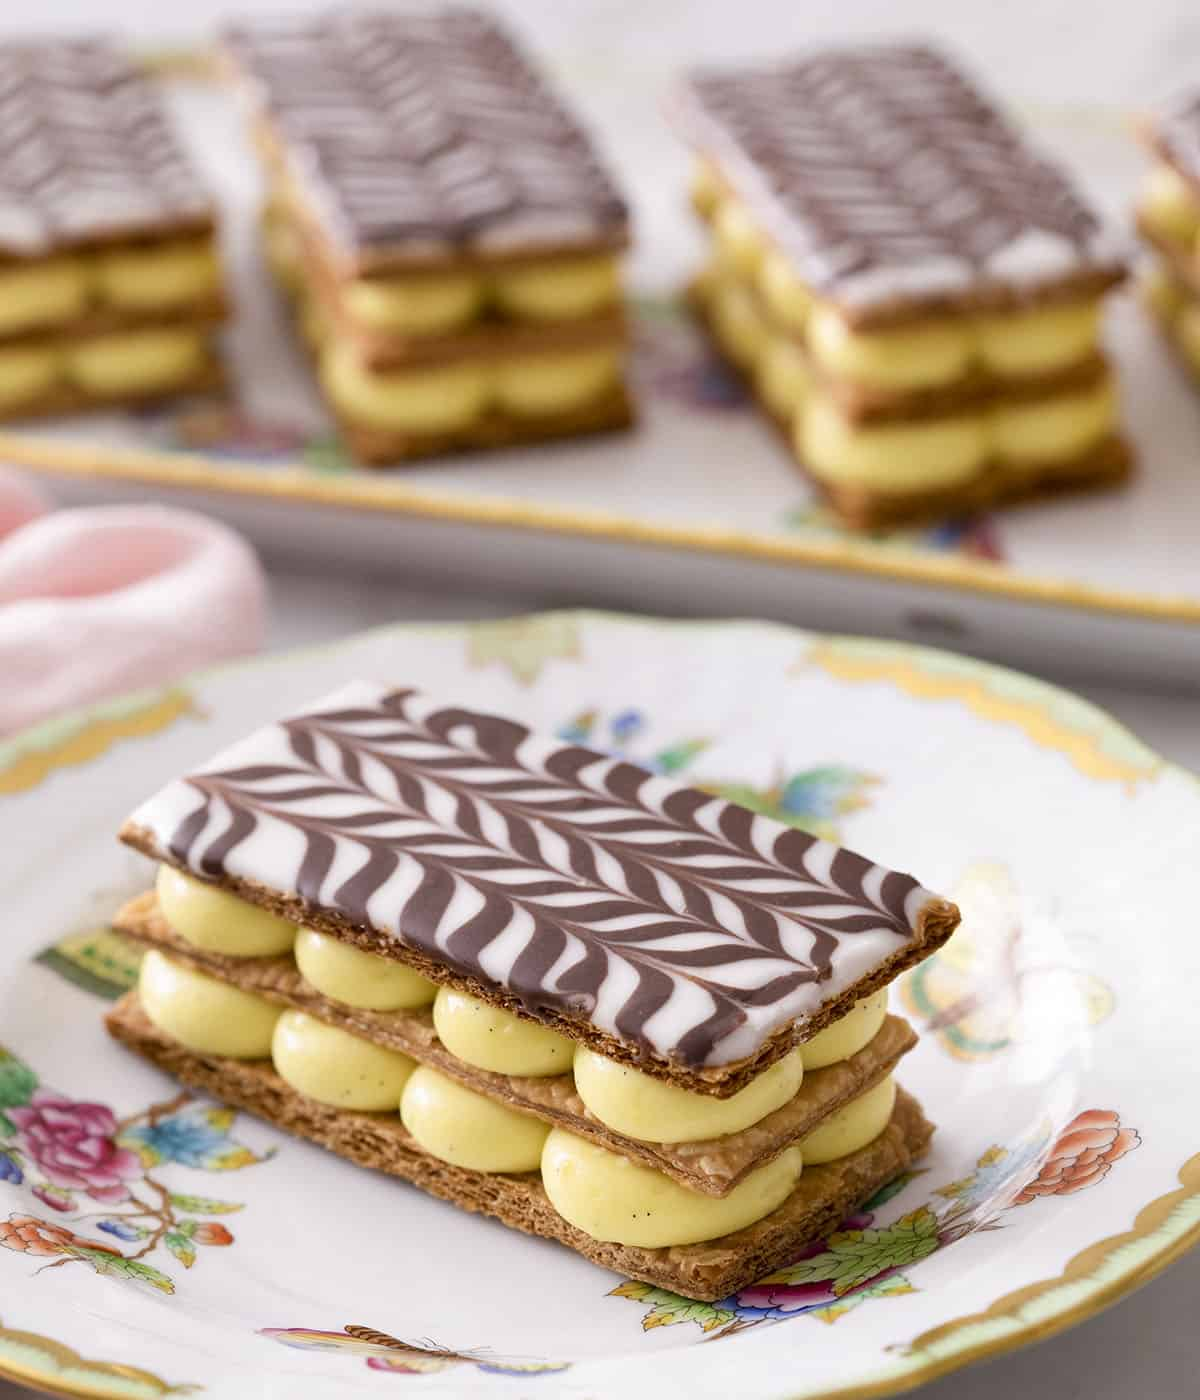 Mille Feuilles filled with vanilla pastry cream.